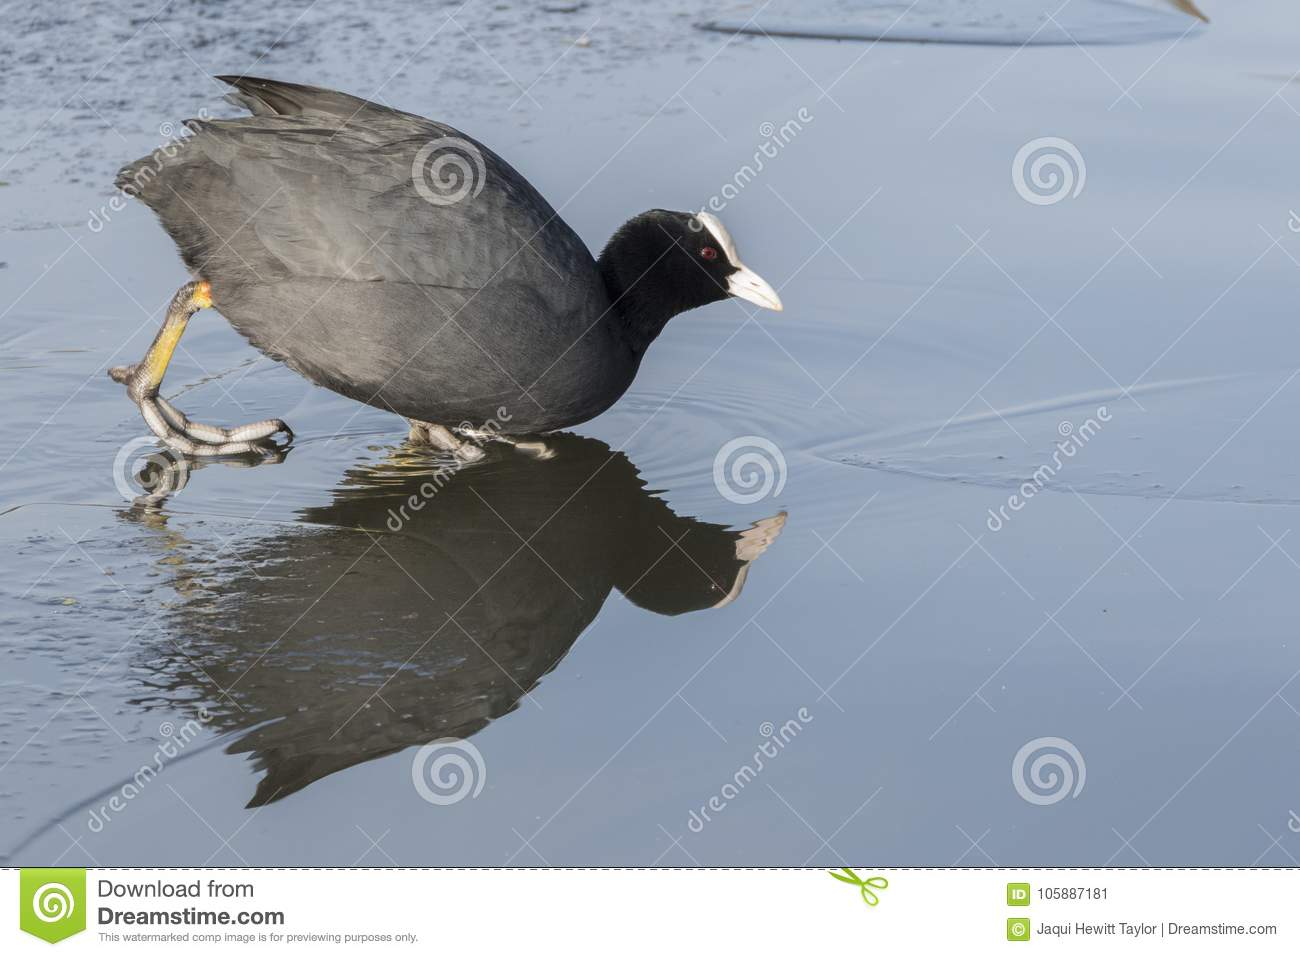 A coot entering the icy water